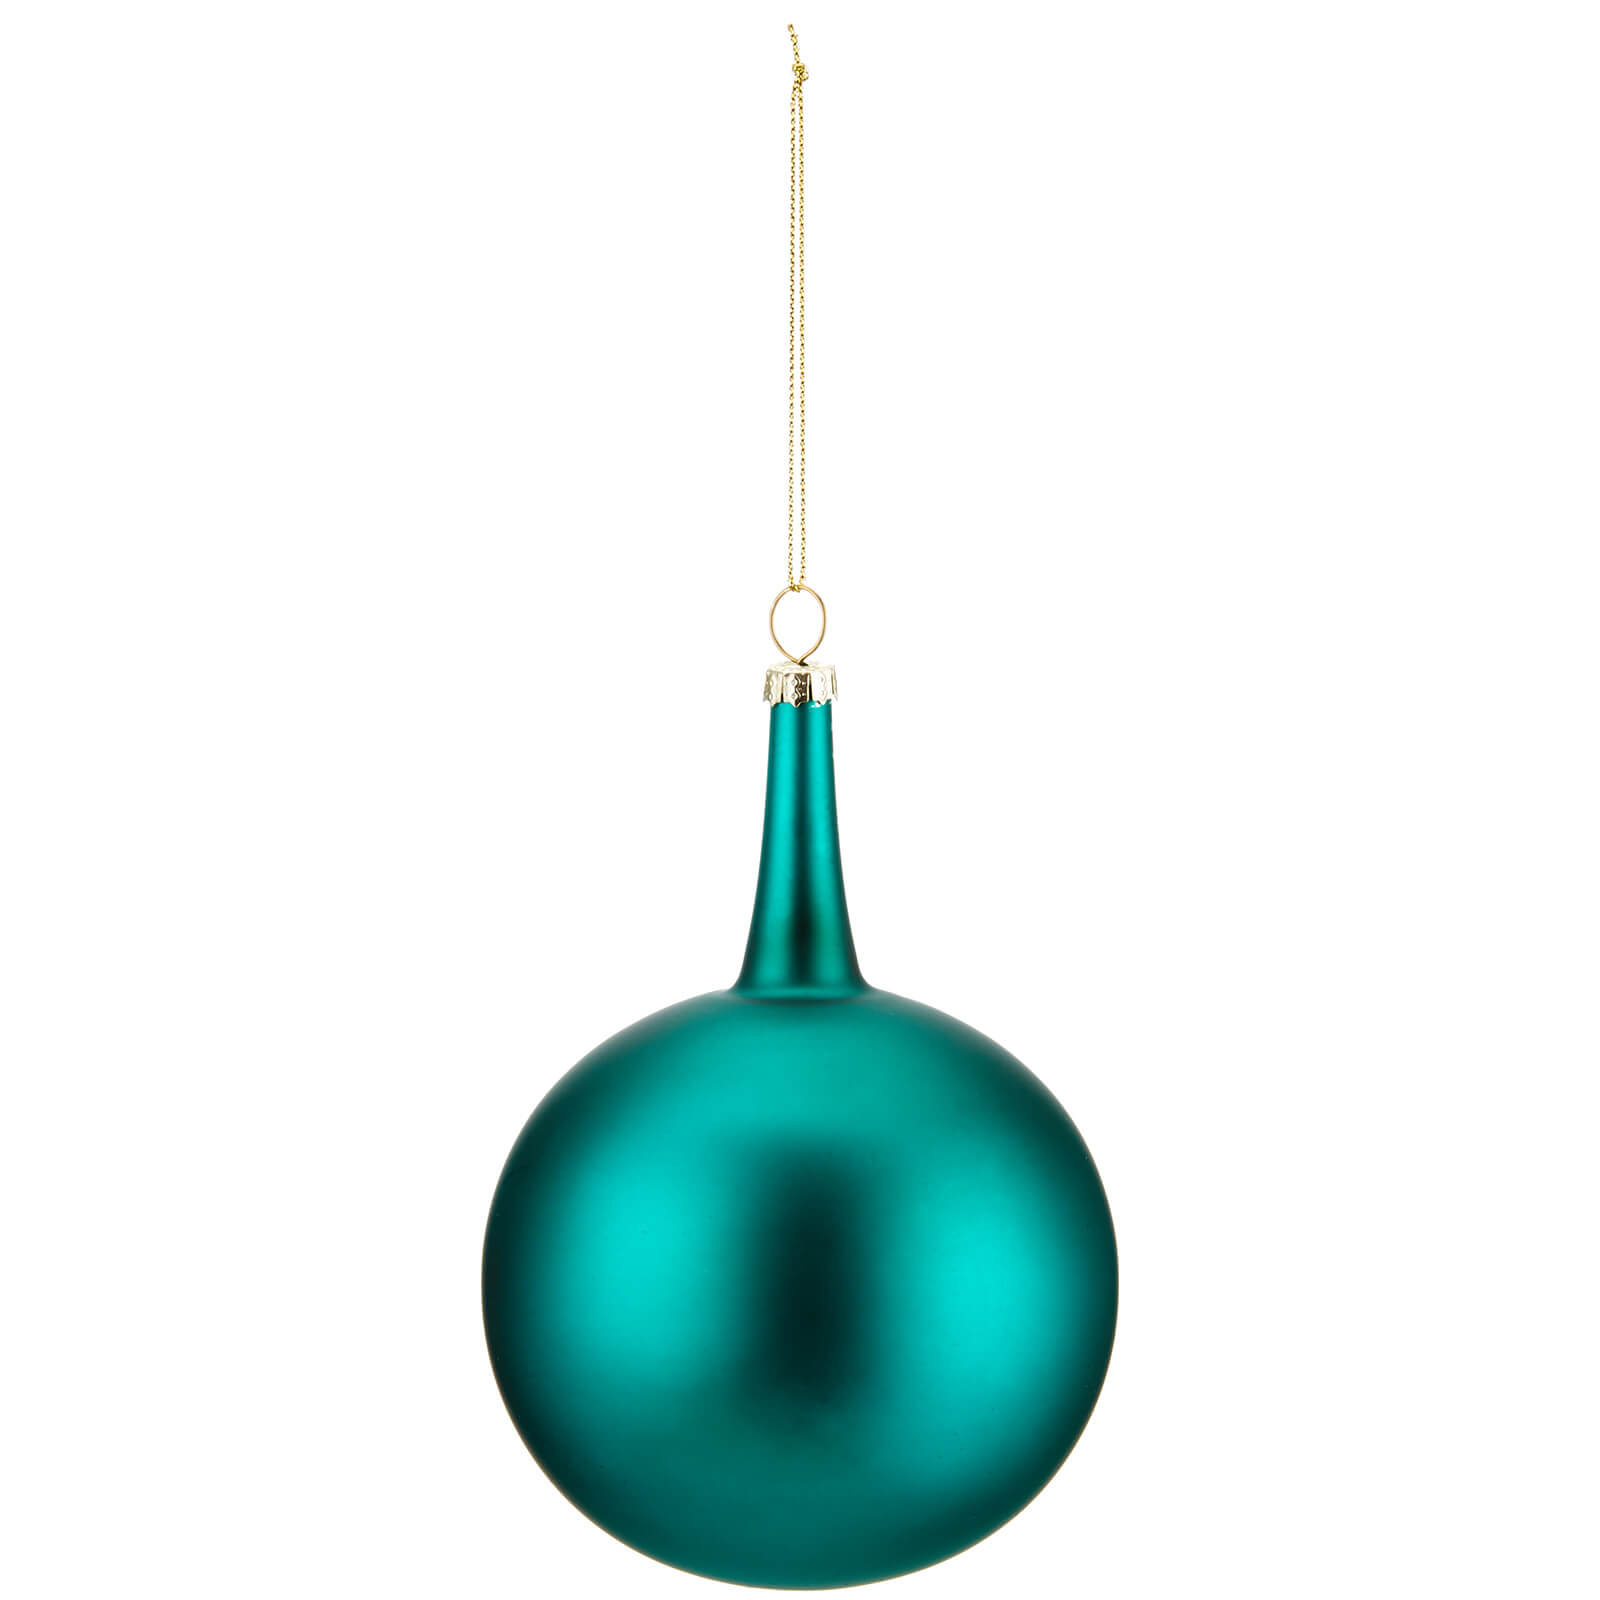 Bark & Blossom Glitter Swirl Teal Onion Bauble